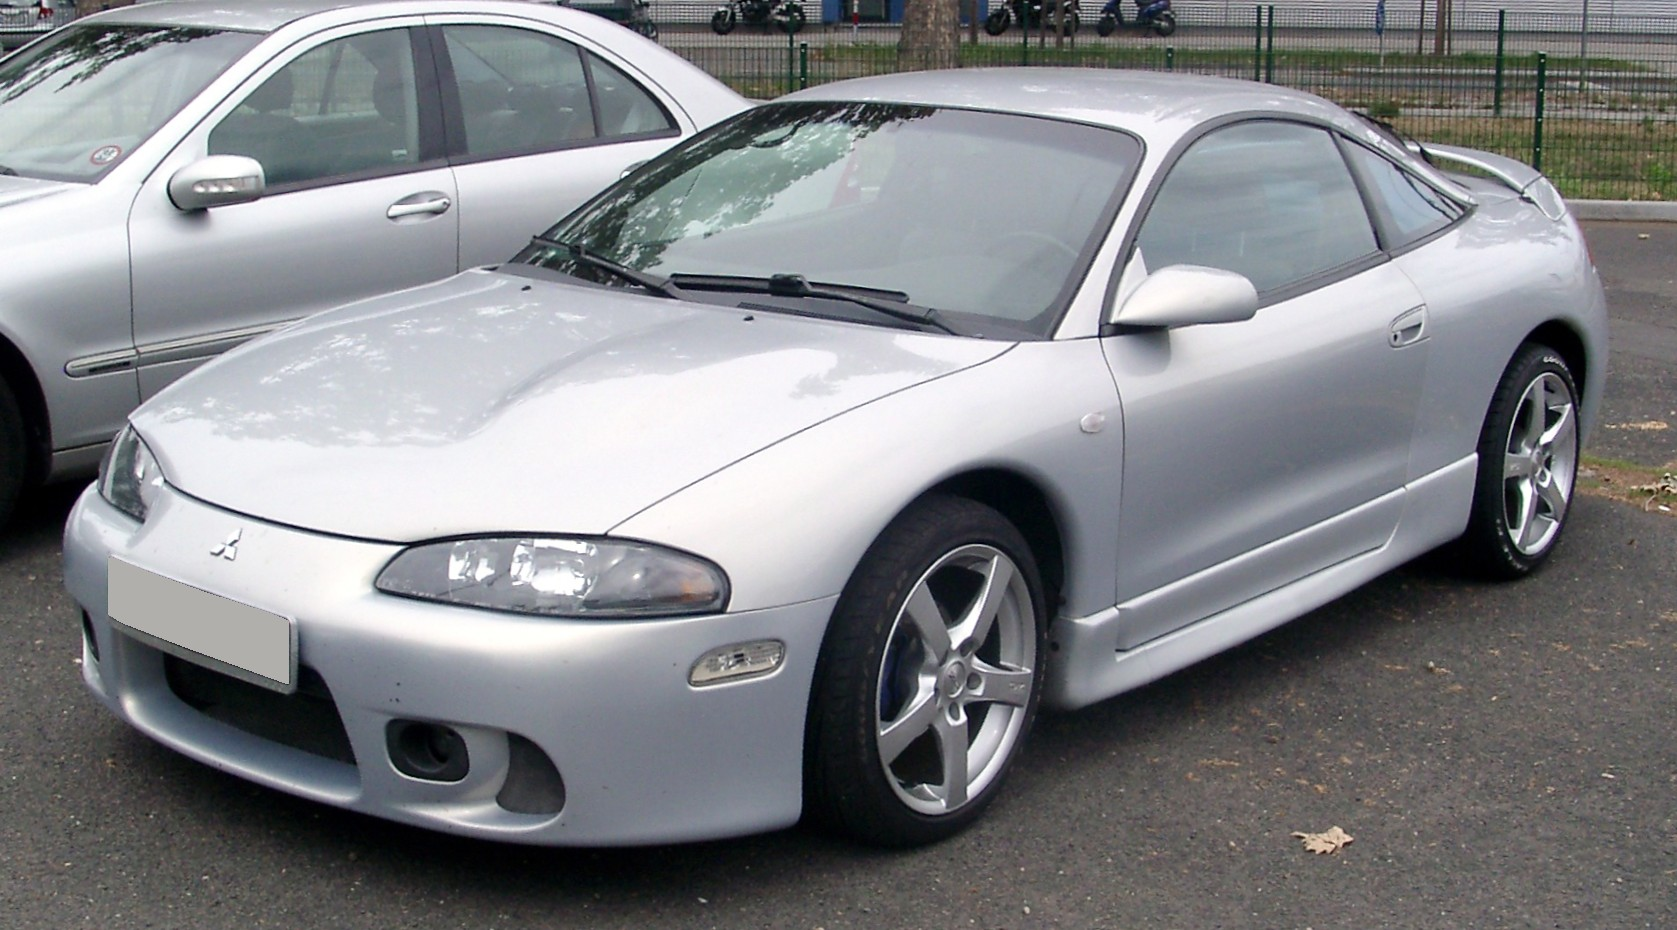 mitsubishi eclipse iv 2008 pictures #11